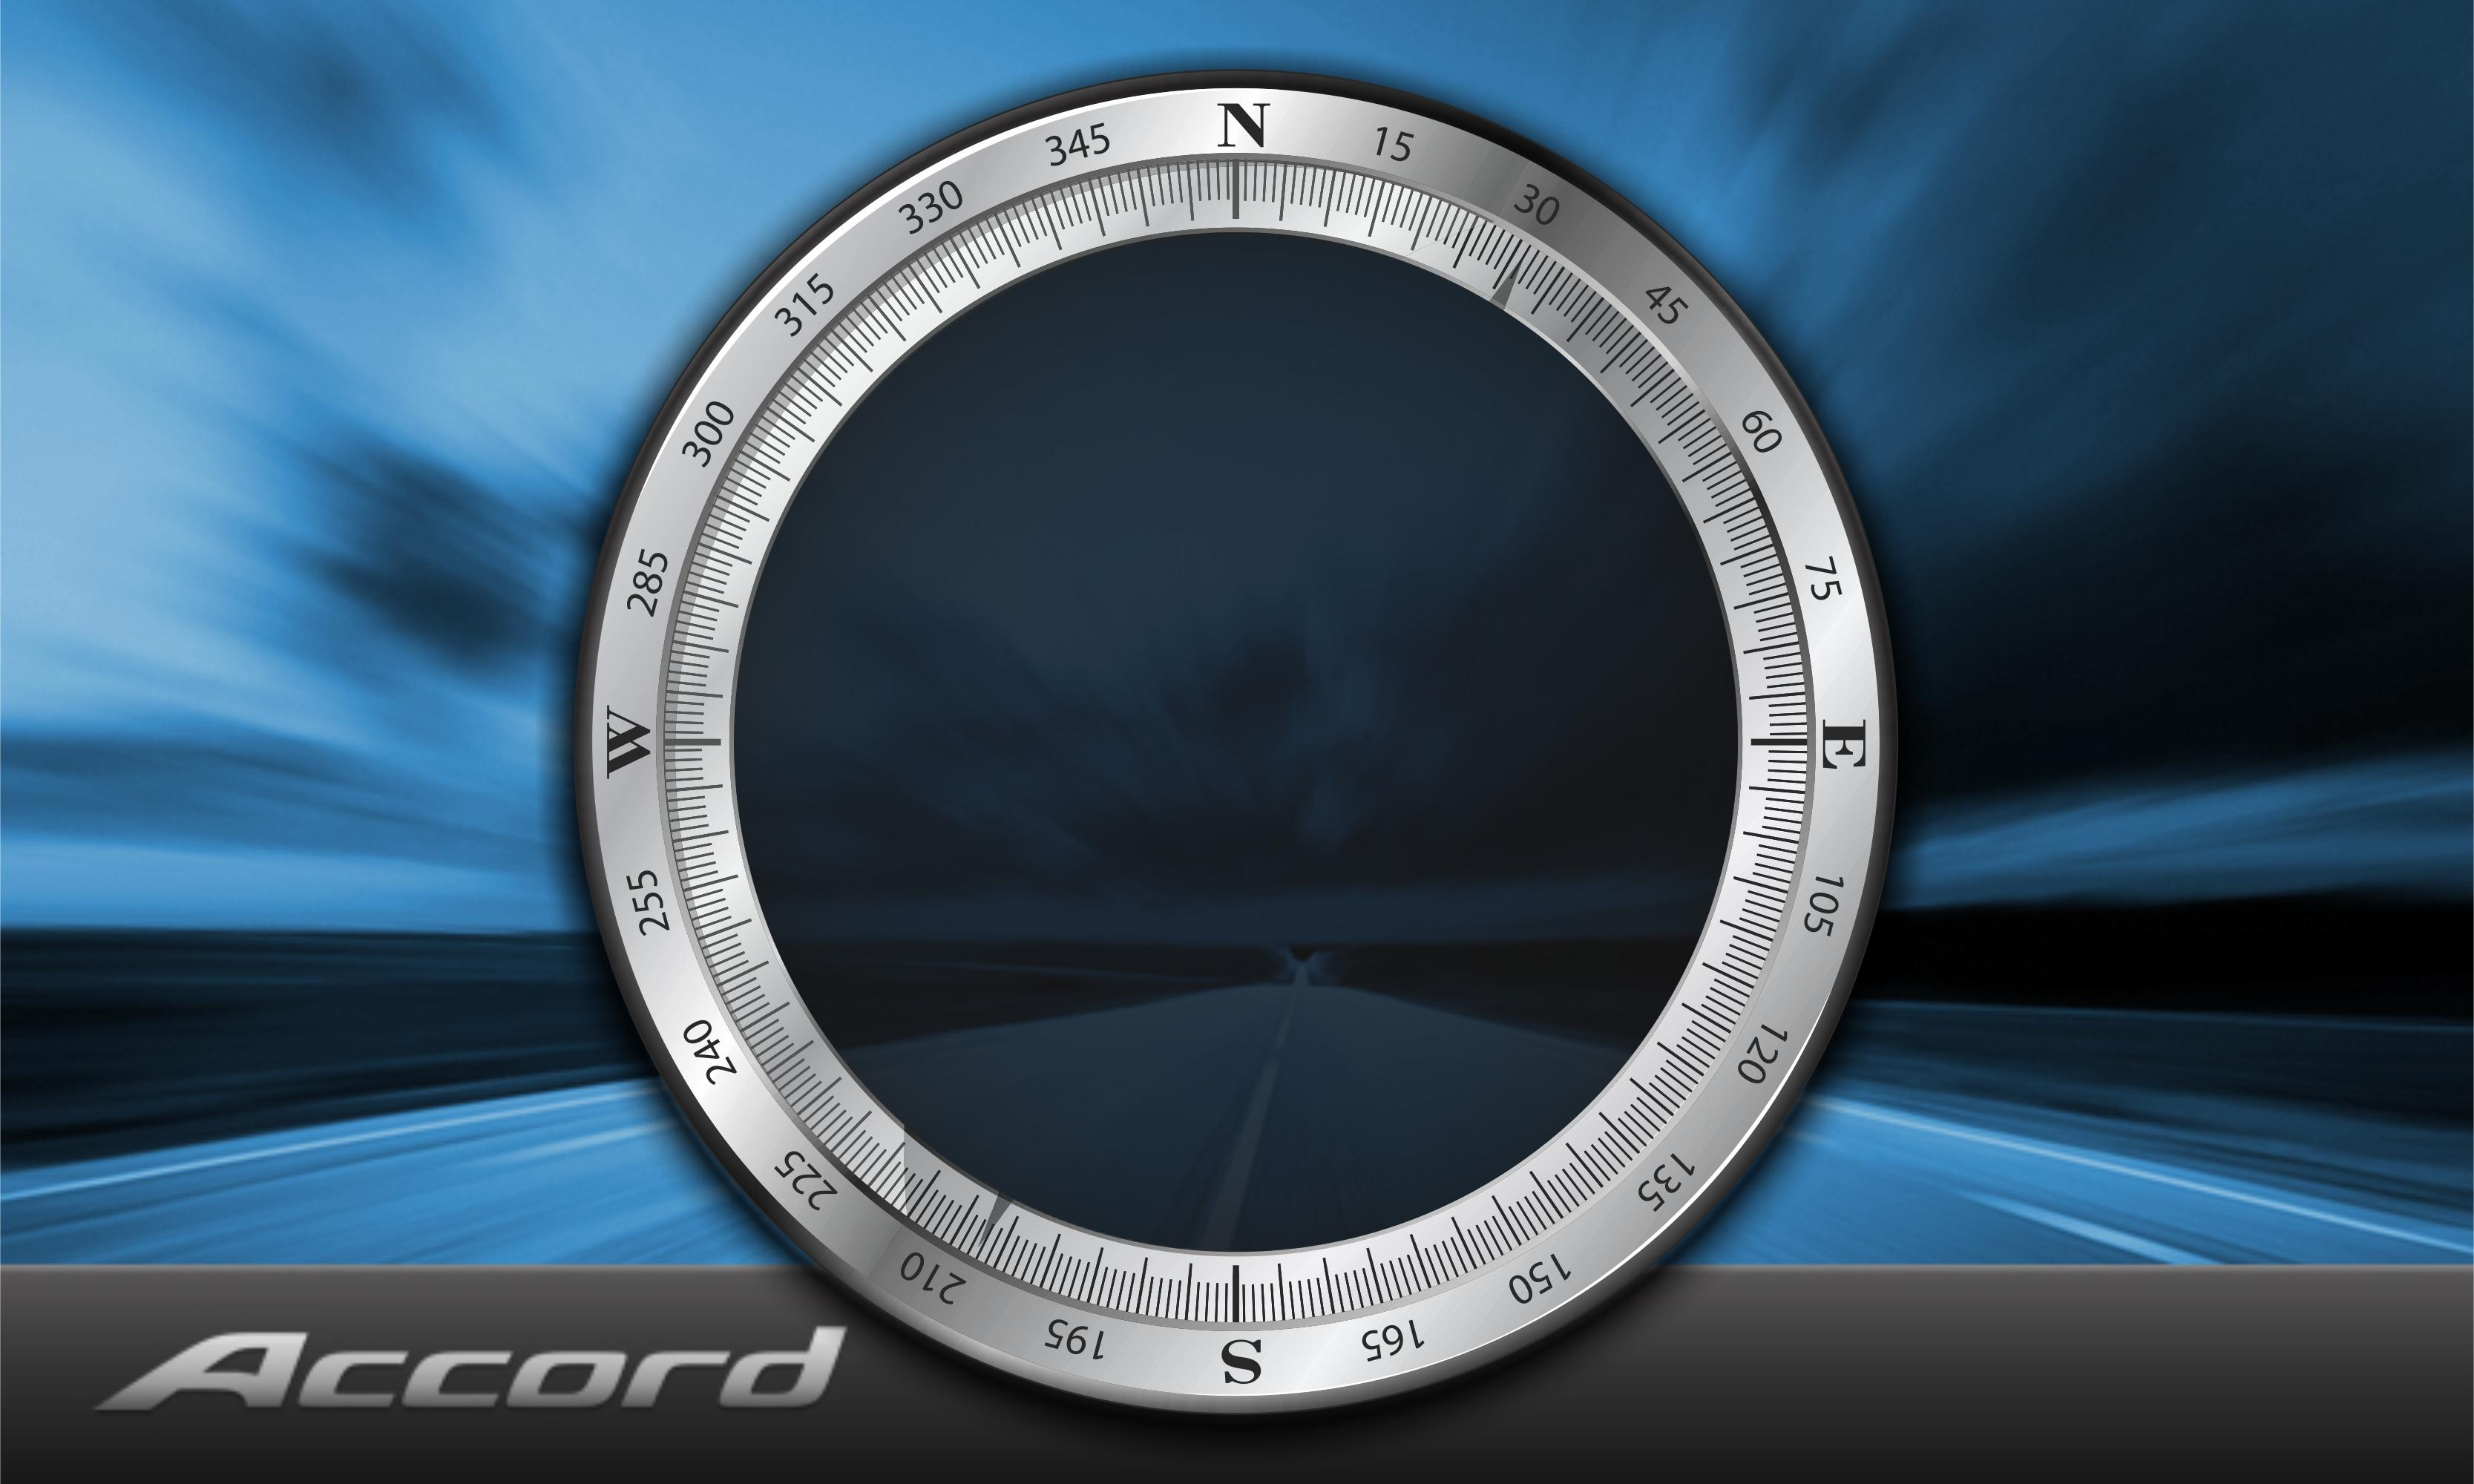 Honda Accord Clock Wallpaper Wallpapersafari